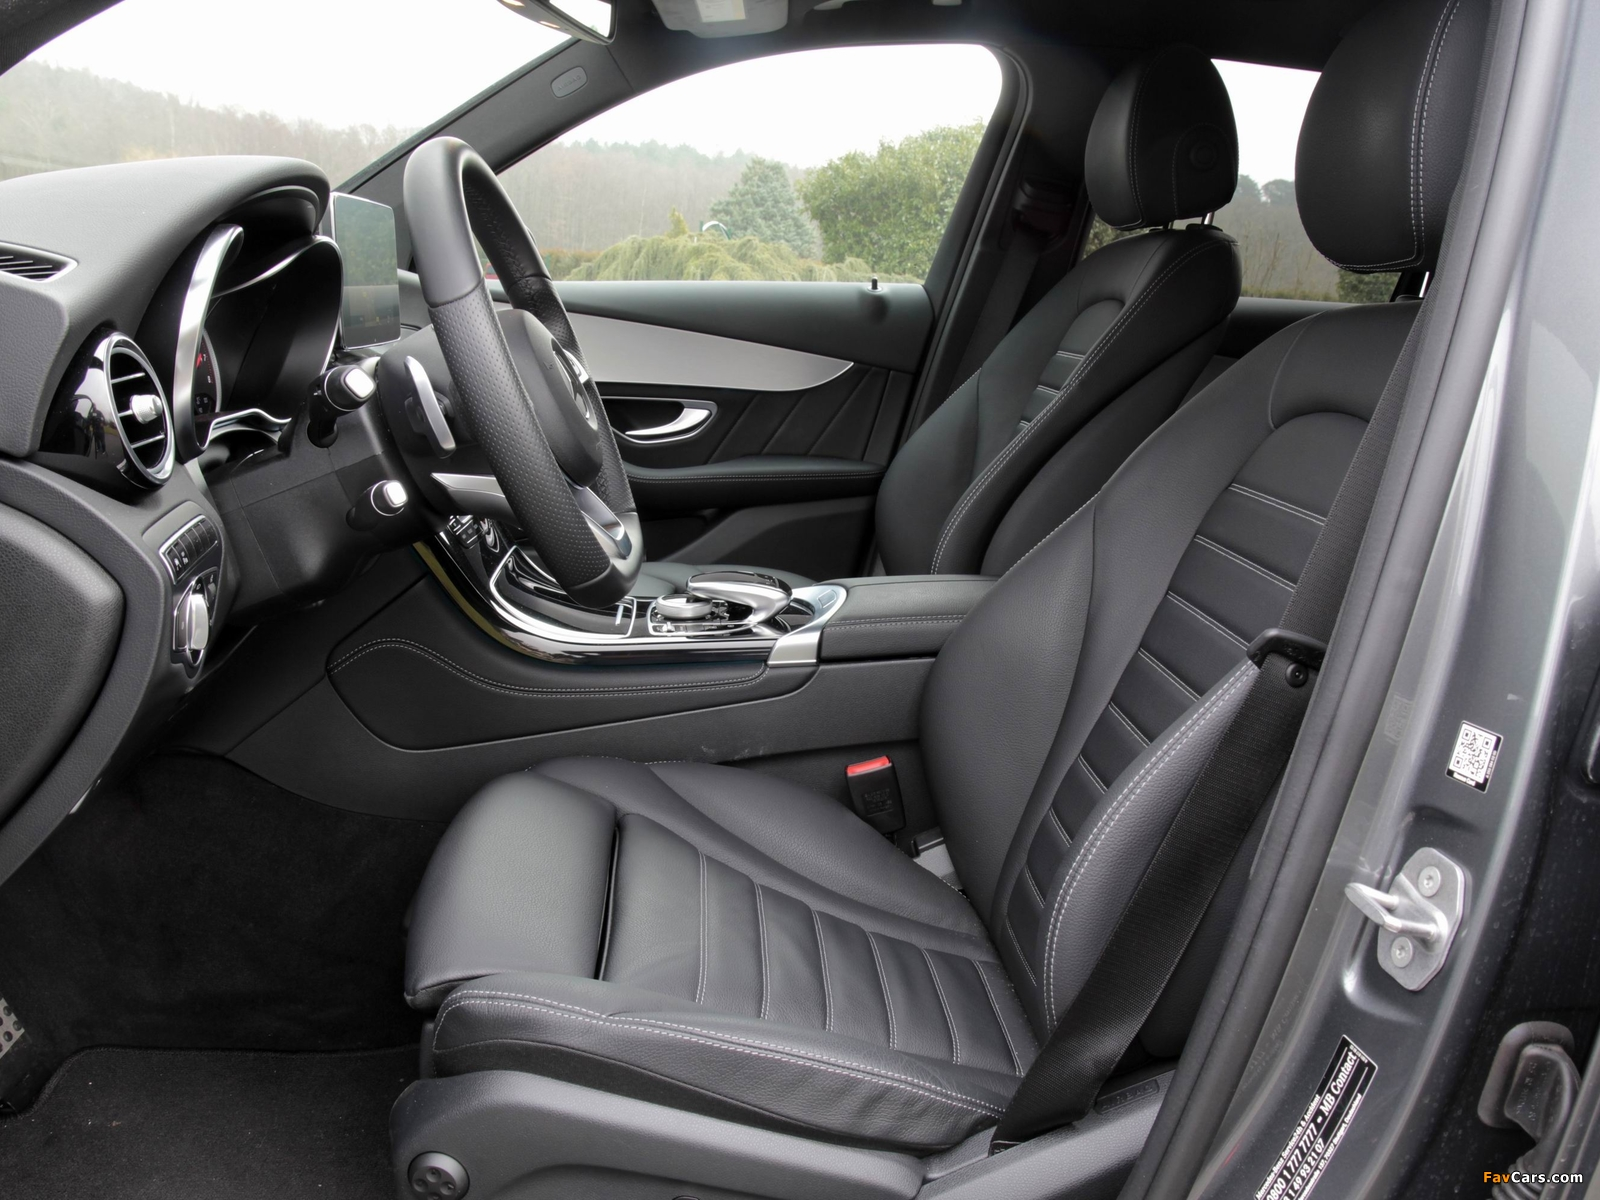 Mercedes-Benz GLC 250 4MATIC AMG Line (X253) 2015 pictures (1600 x 1200)